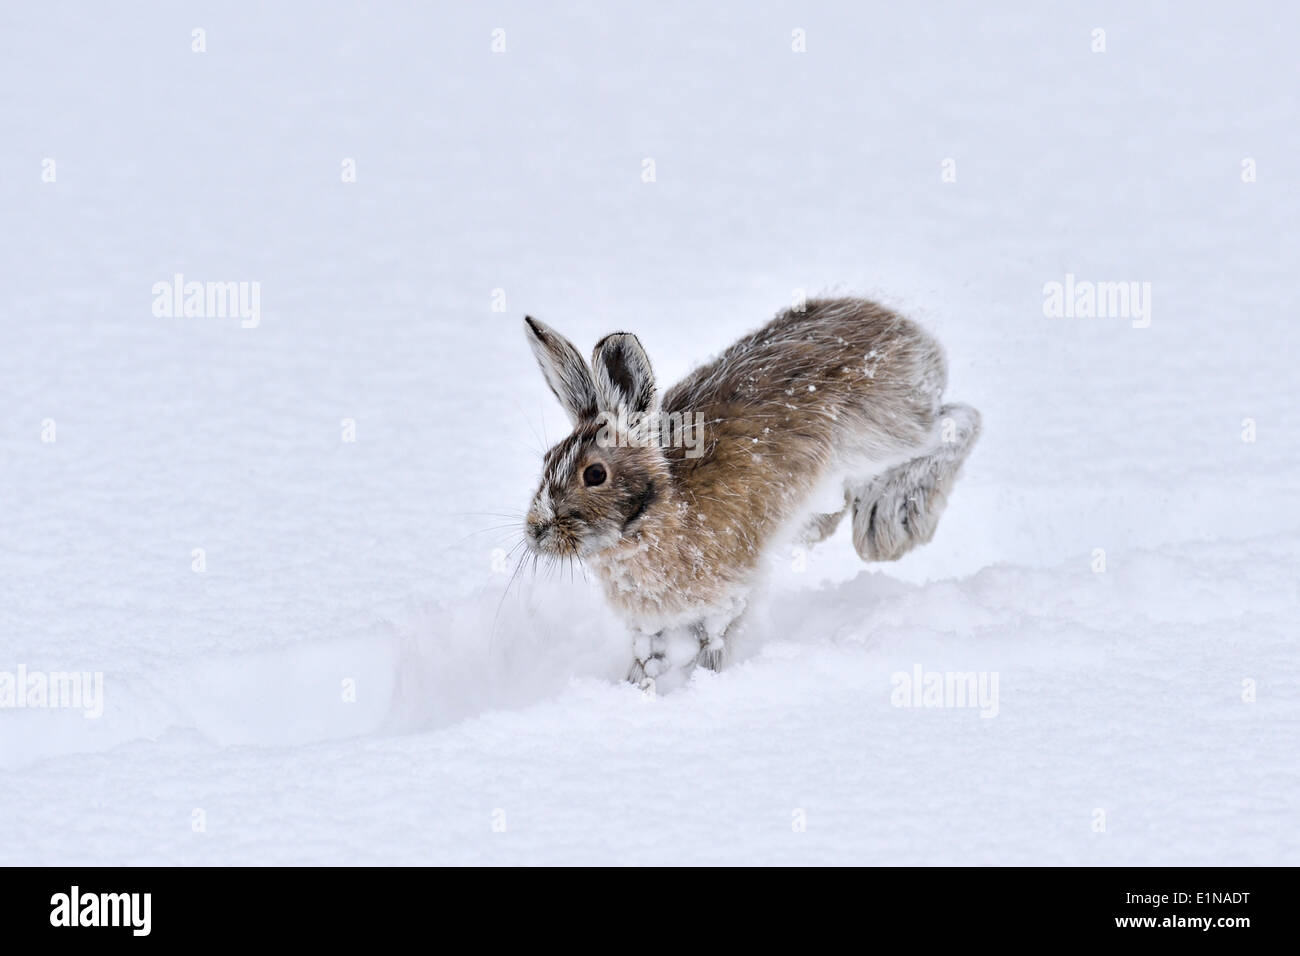 Fotos Rabbit Hopping Alamy De Stockamp; Imágenes QBdoreWExC